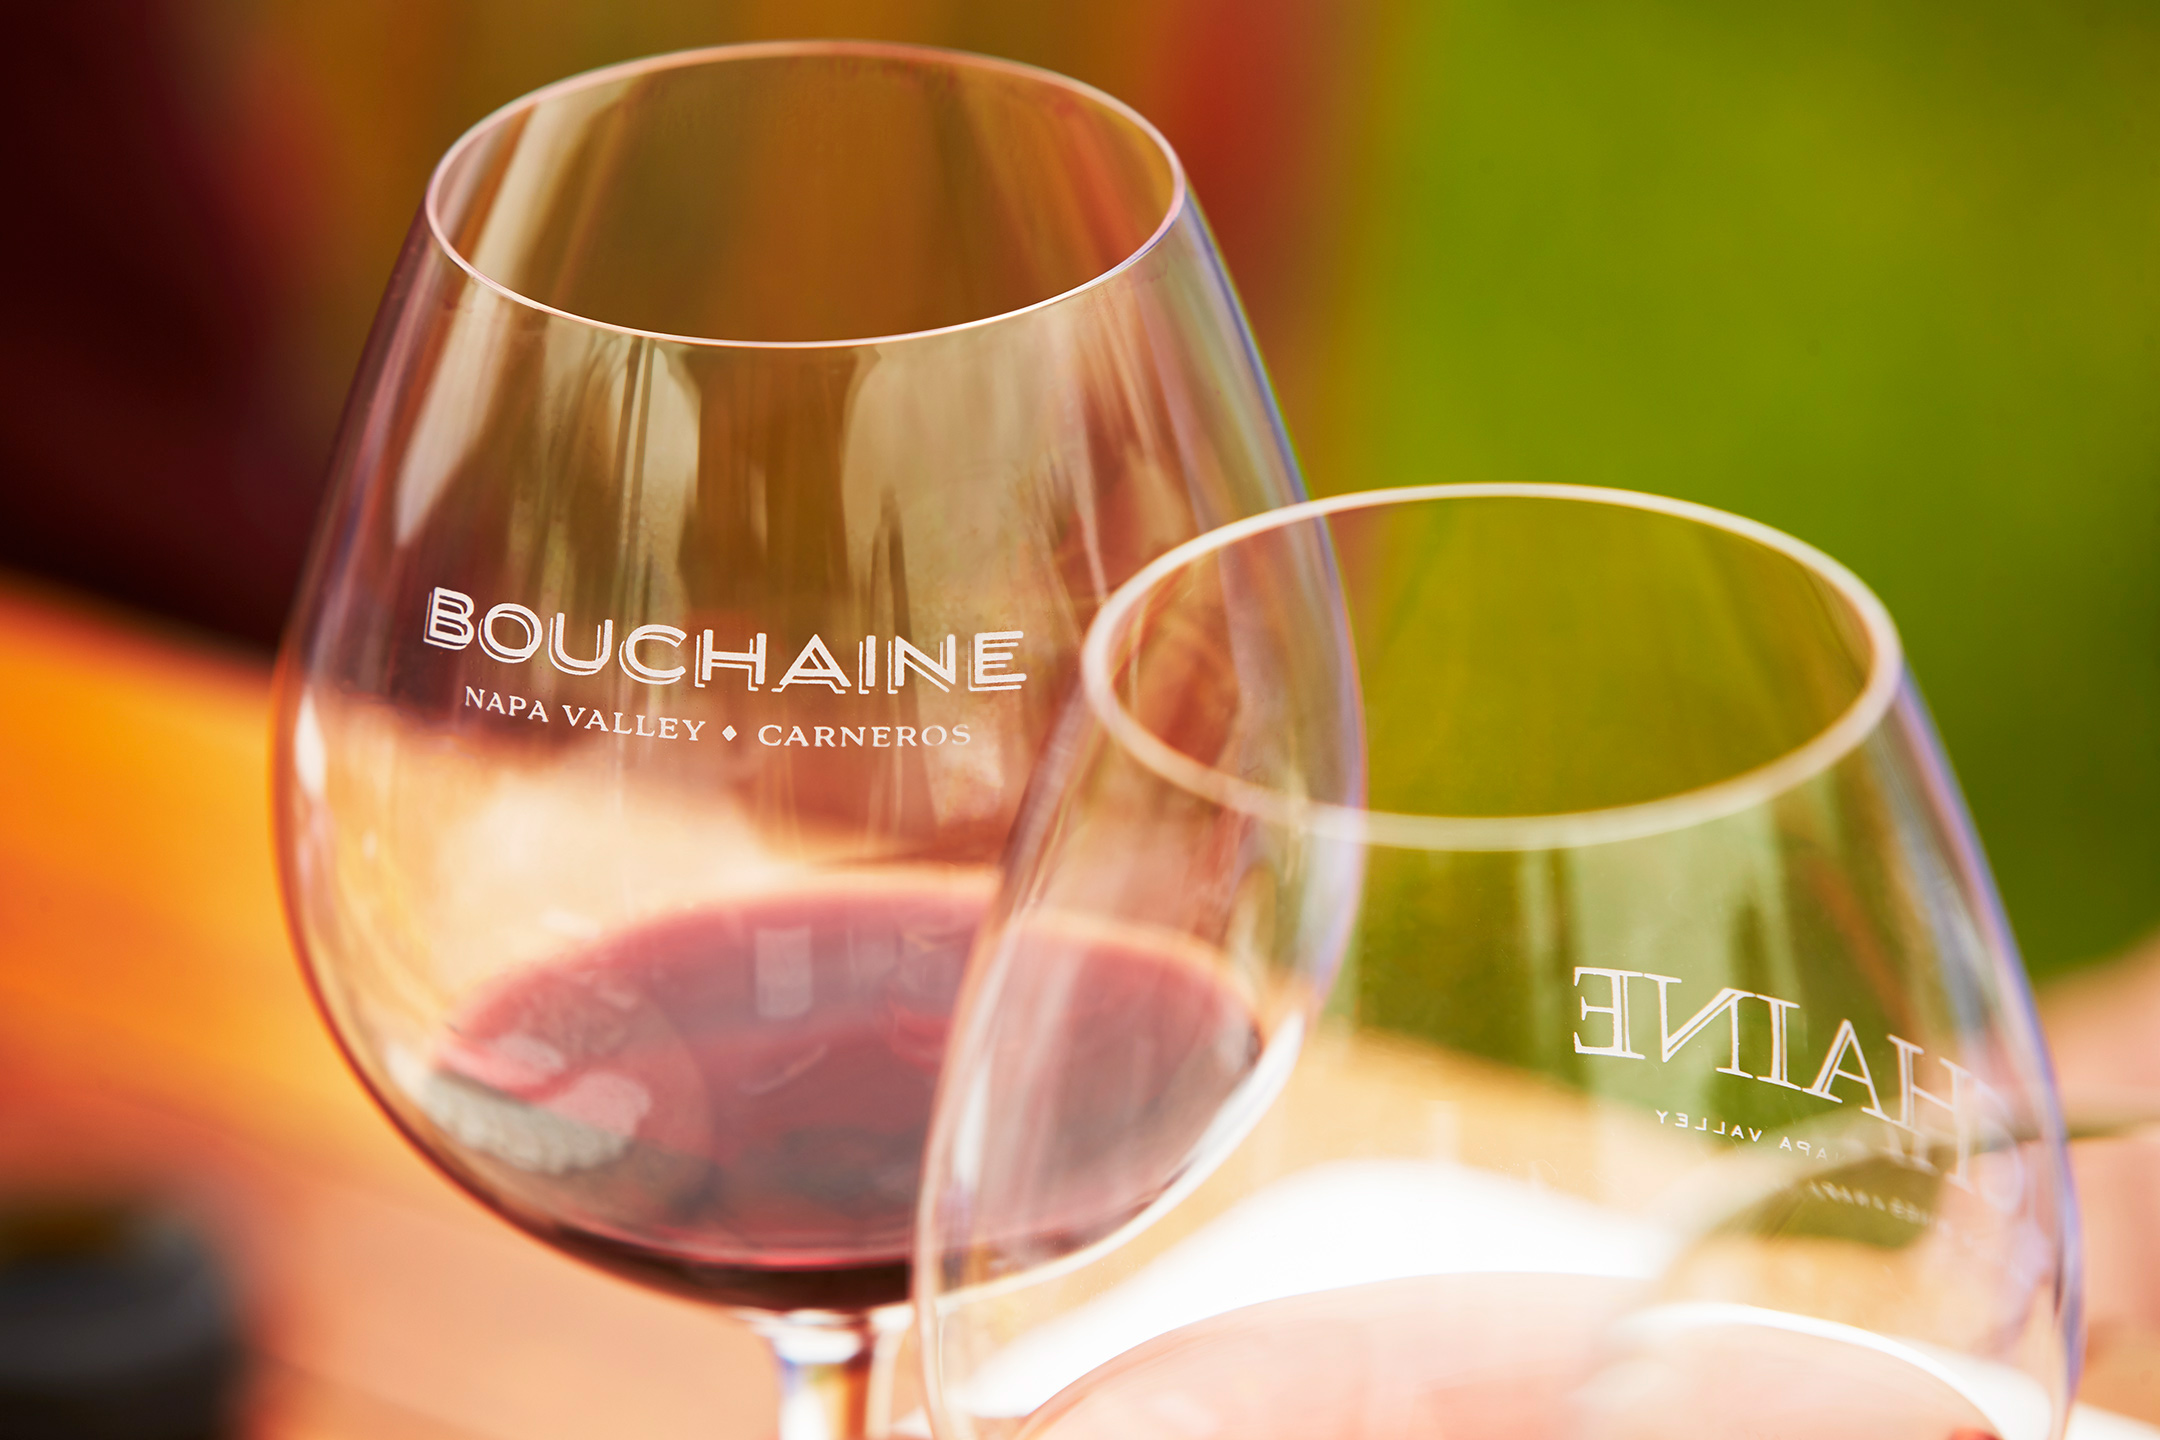 Bouchaine Winery Napa Wine Glass Photographer Brandon McGanty